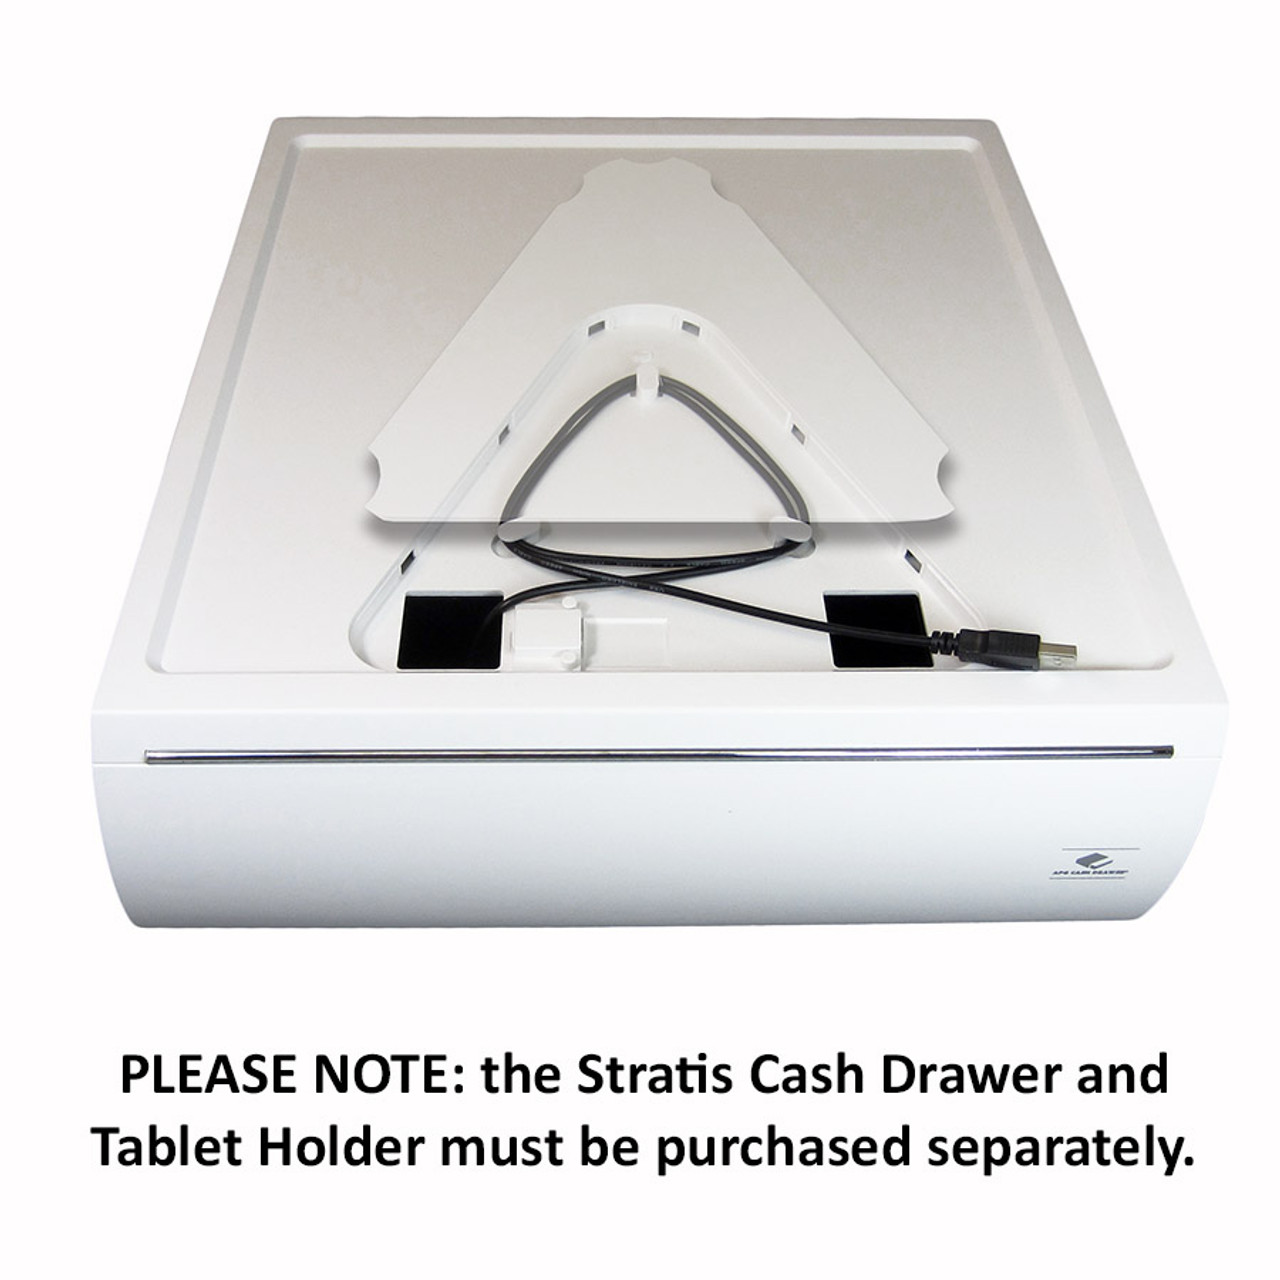 APG Stratis Series Cash Drawer, White